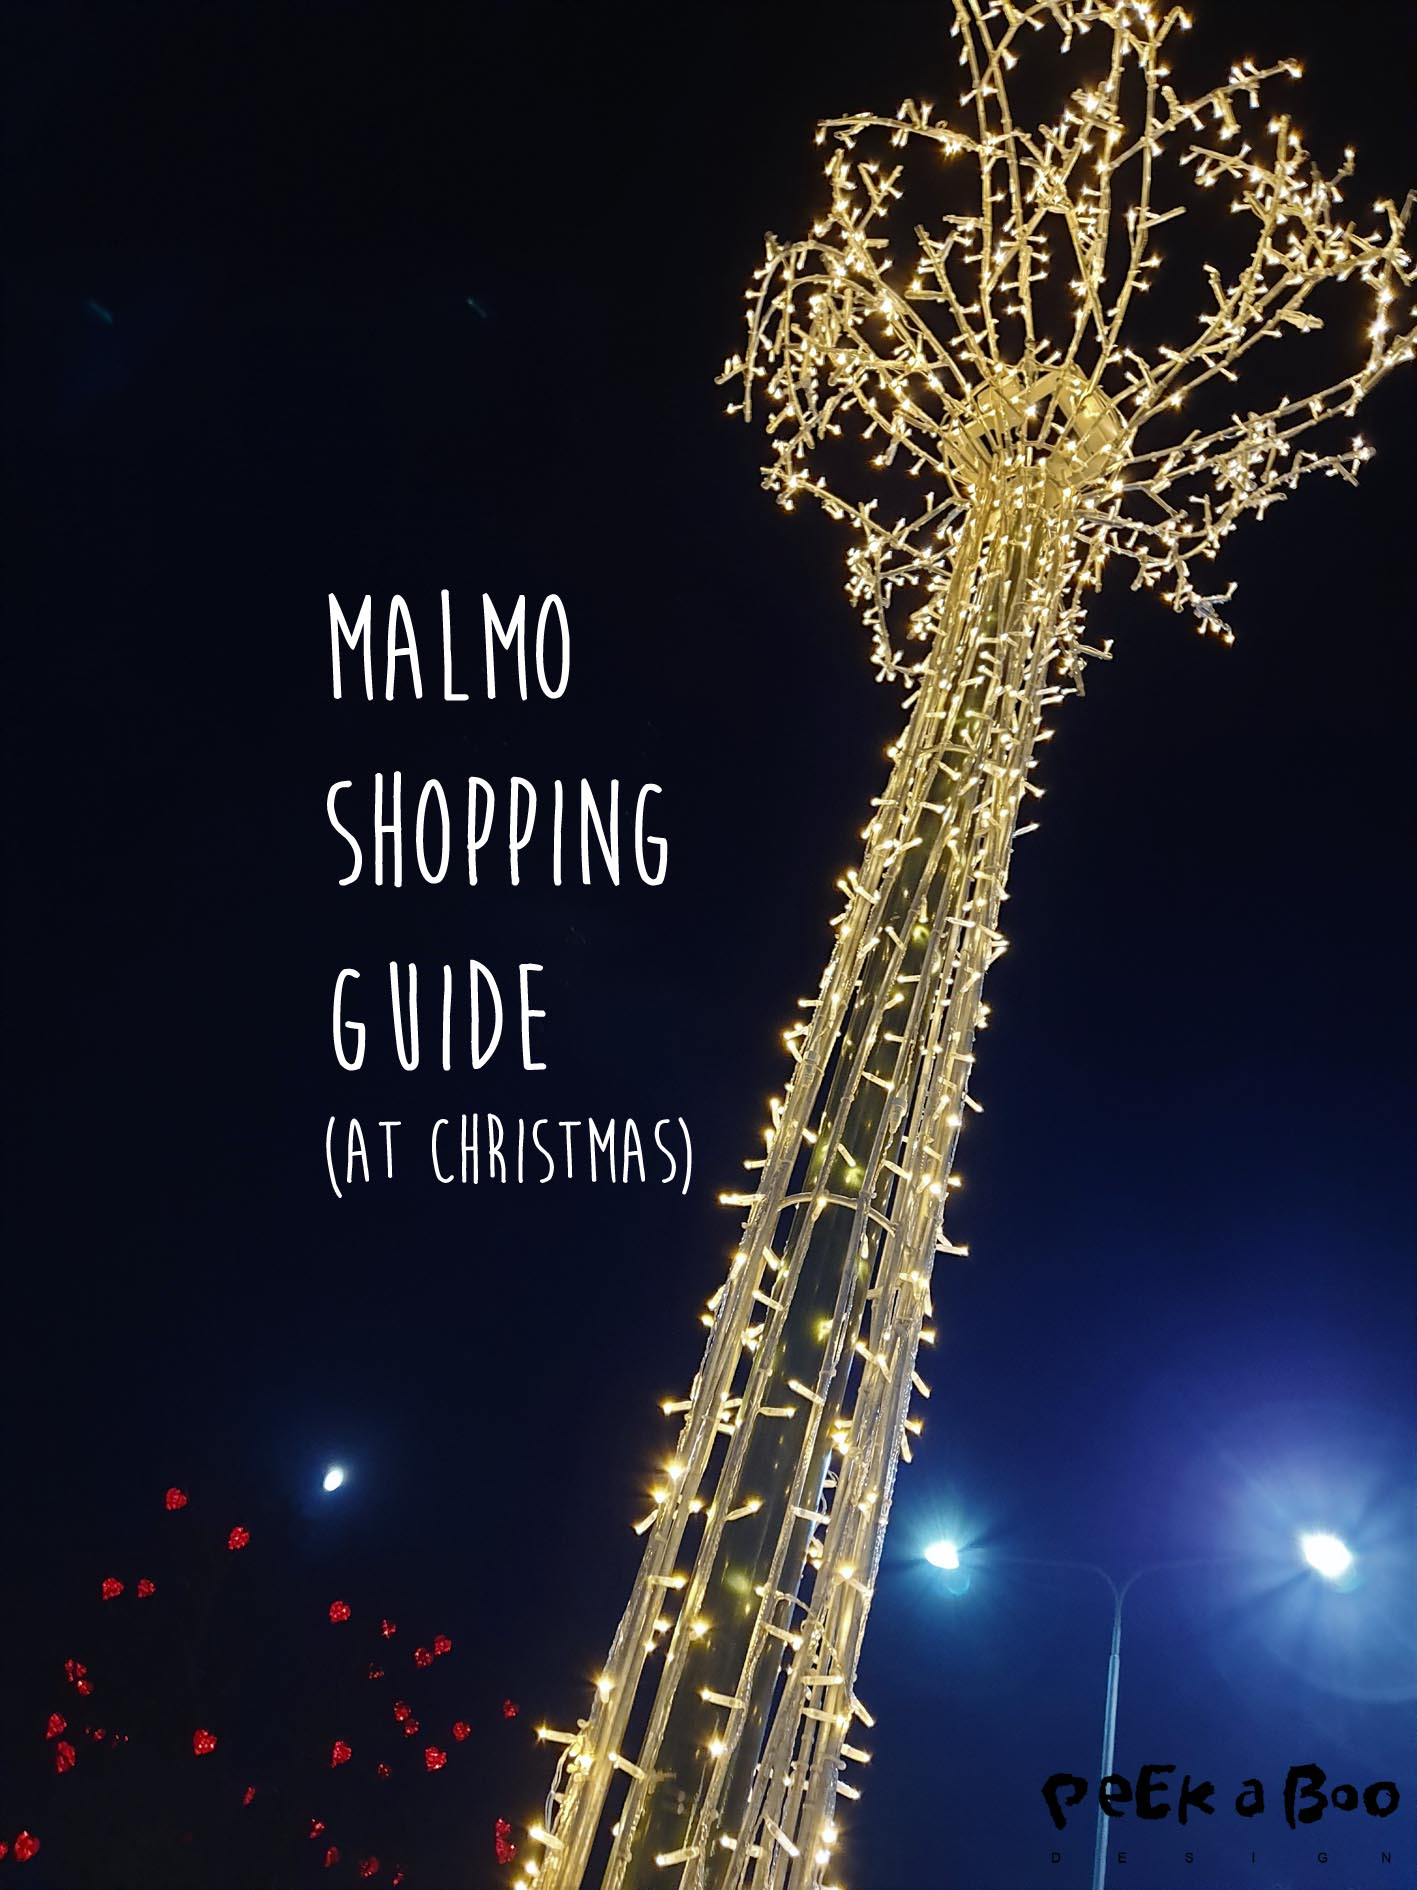 Shopping in december in Malmo, Sweden gives you the opptunity to see all the stunning christmas lights all over town.